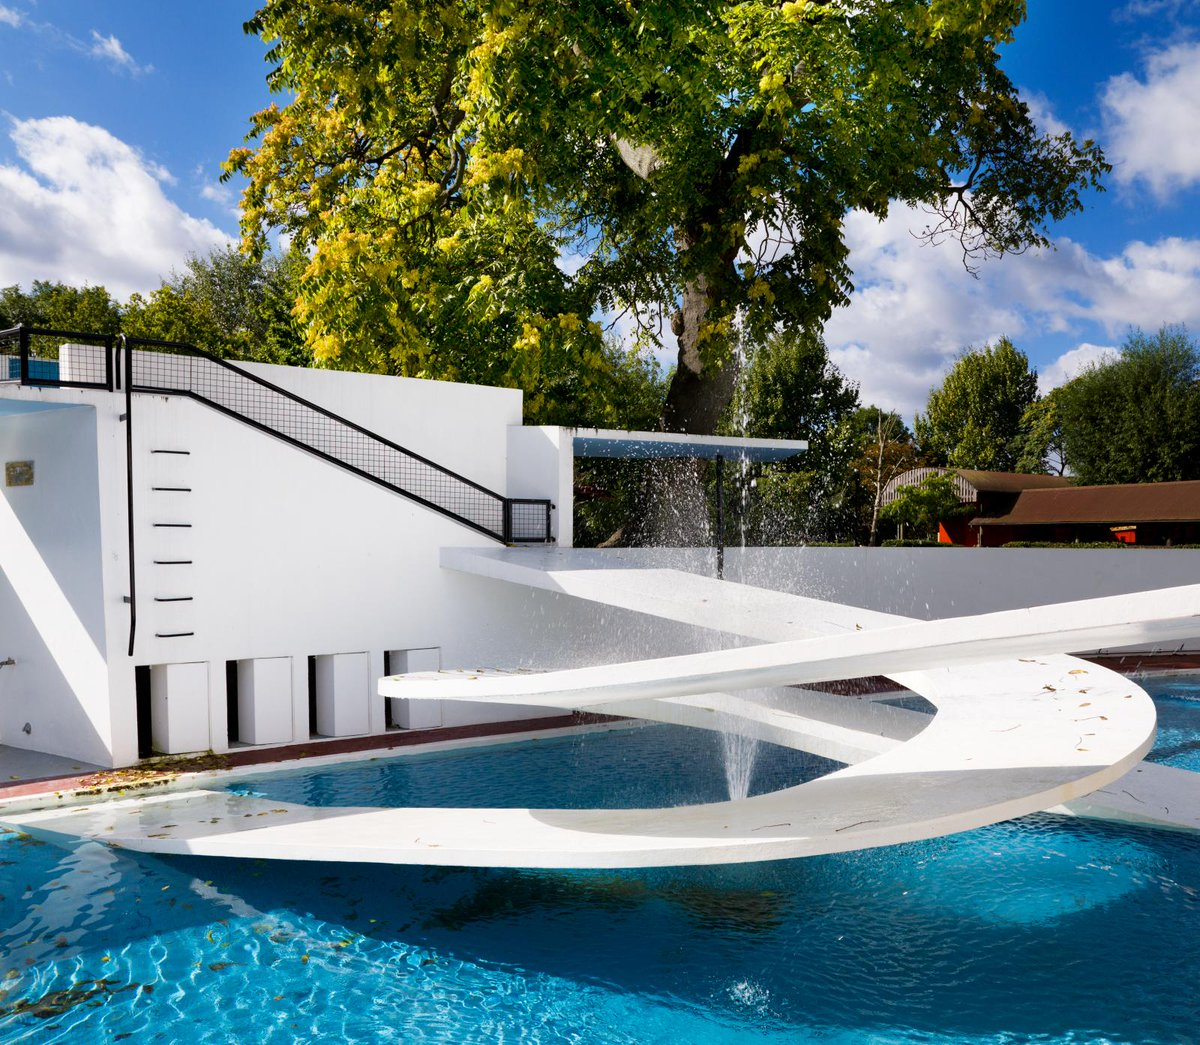 The leading Modernist architect Berthold Lubetkin was born on this day in 1901  Much of his work is listed and much of it at Grade I, including the Penguin Pool at @zsllondonzoo  https://t.co/QfJwhbmE7k